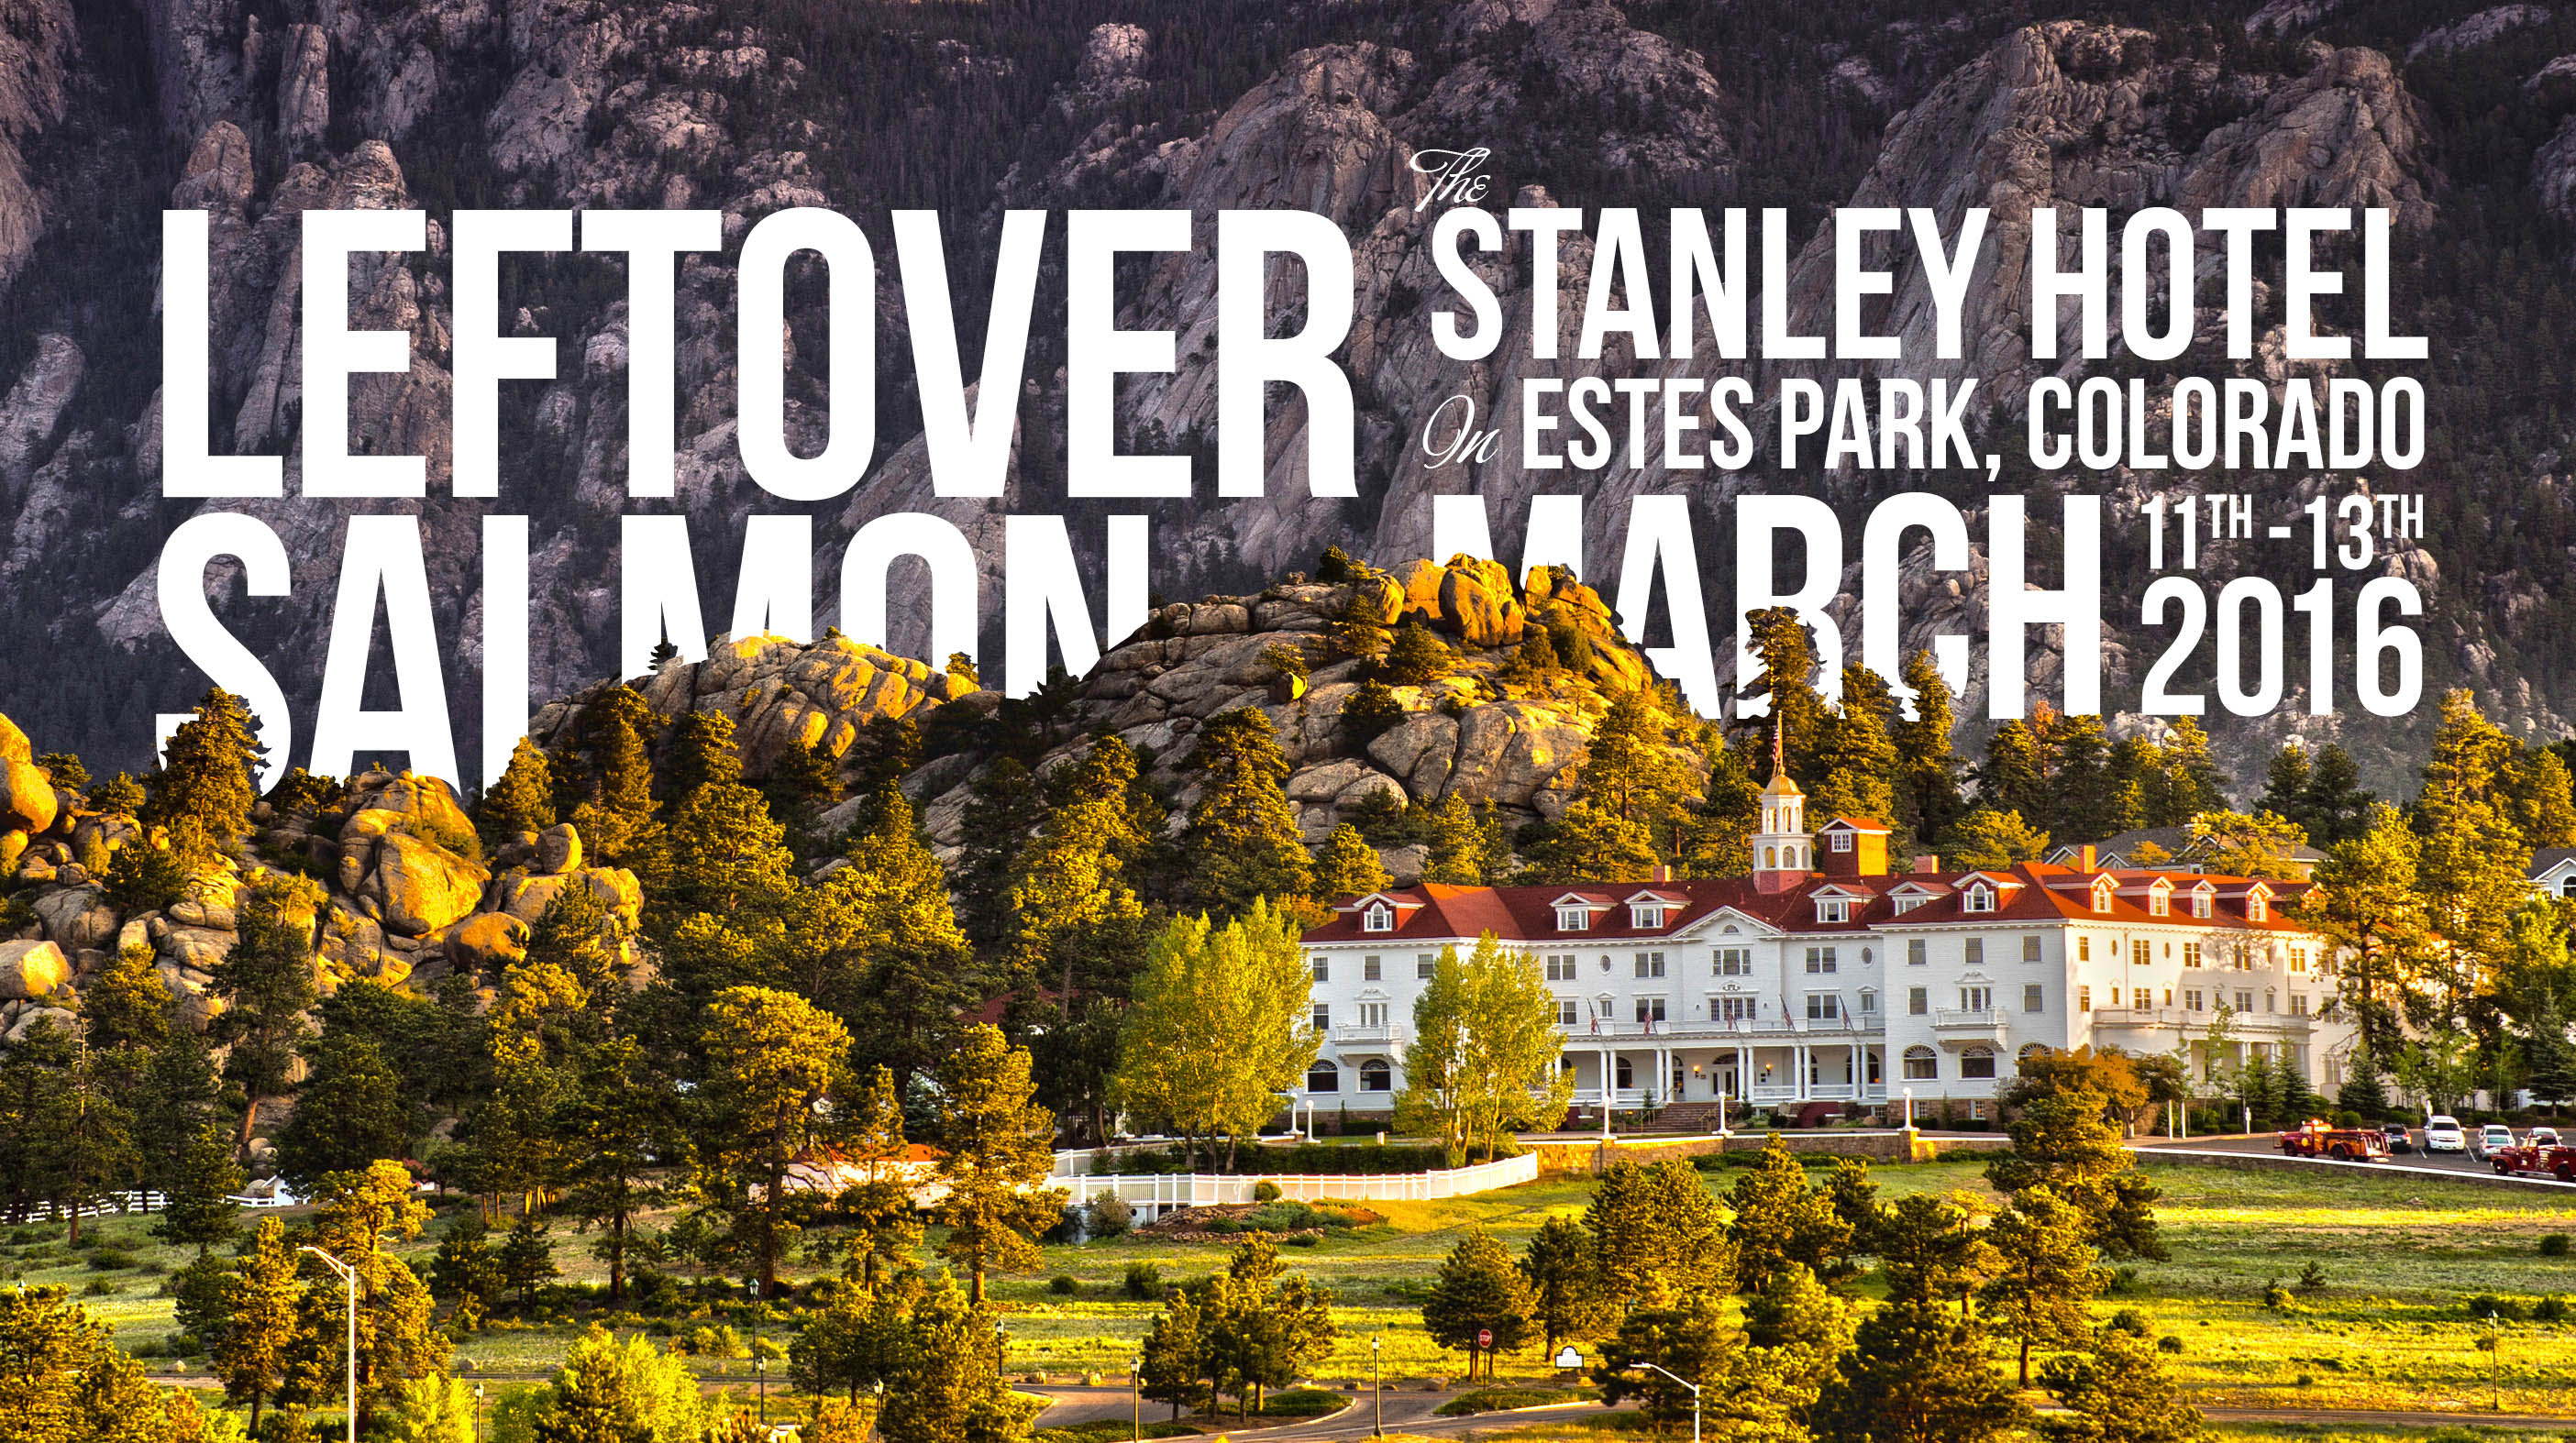 Leftover Salmon Announces Stanley Hotel 2016